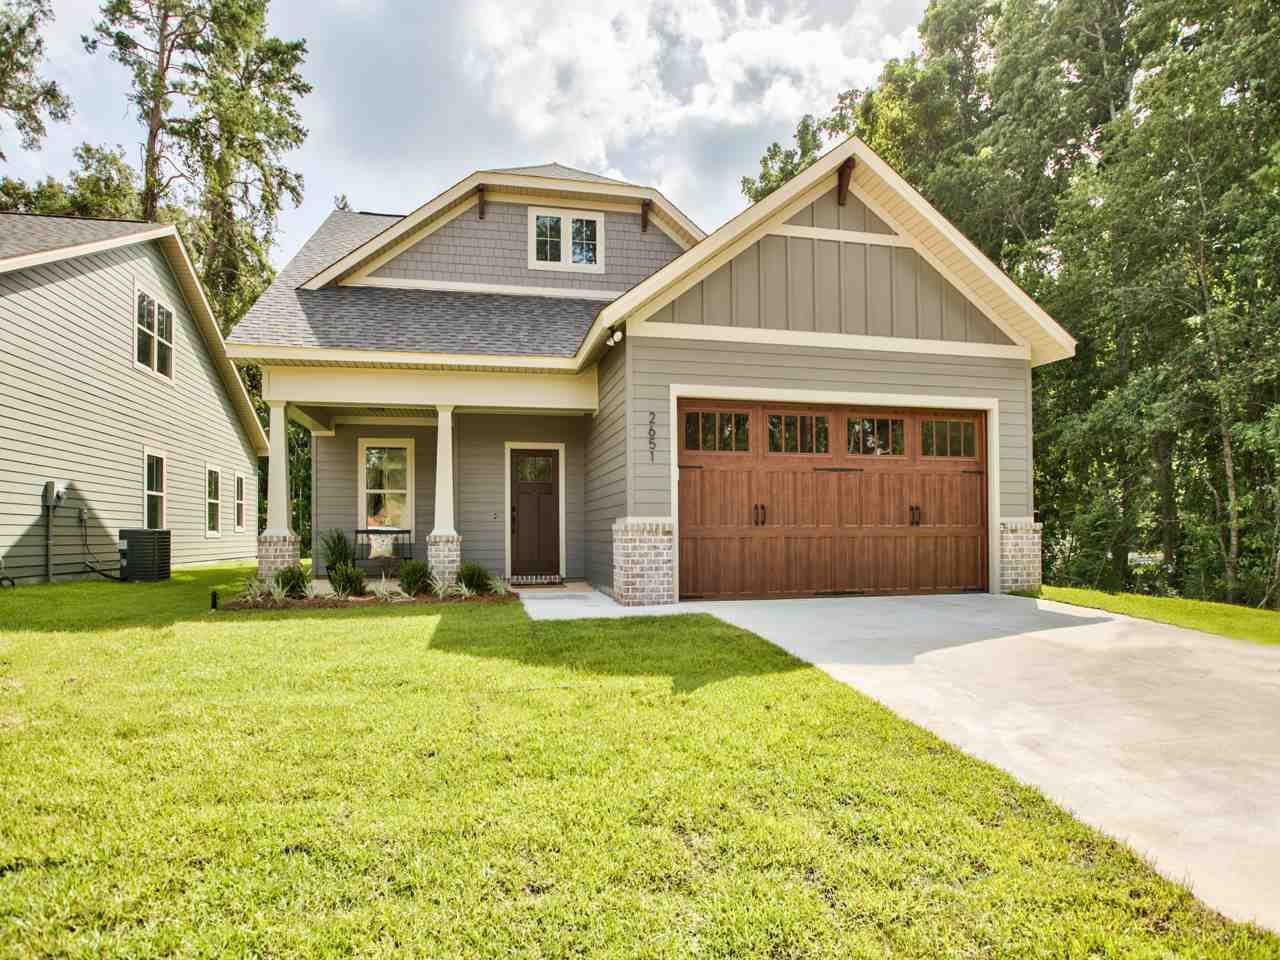 4020 Bending Court, Tallahassee, FL 32308 - MLS#: 321824